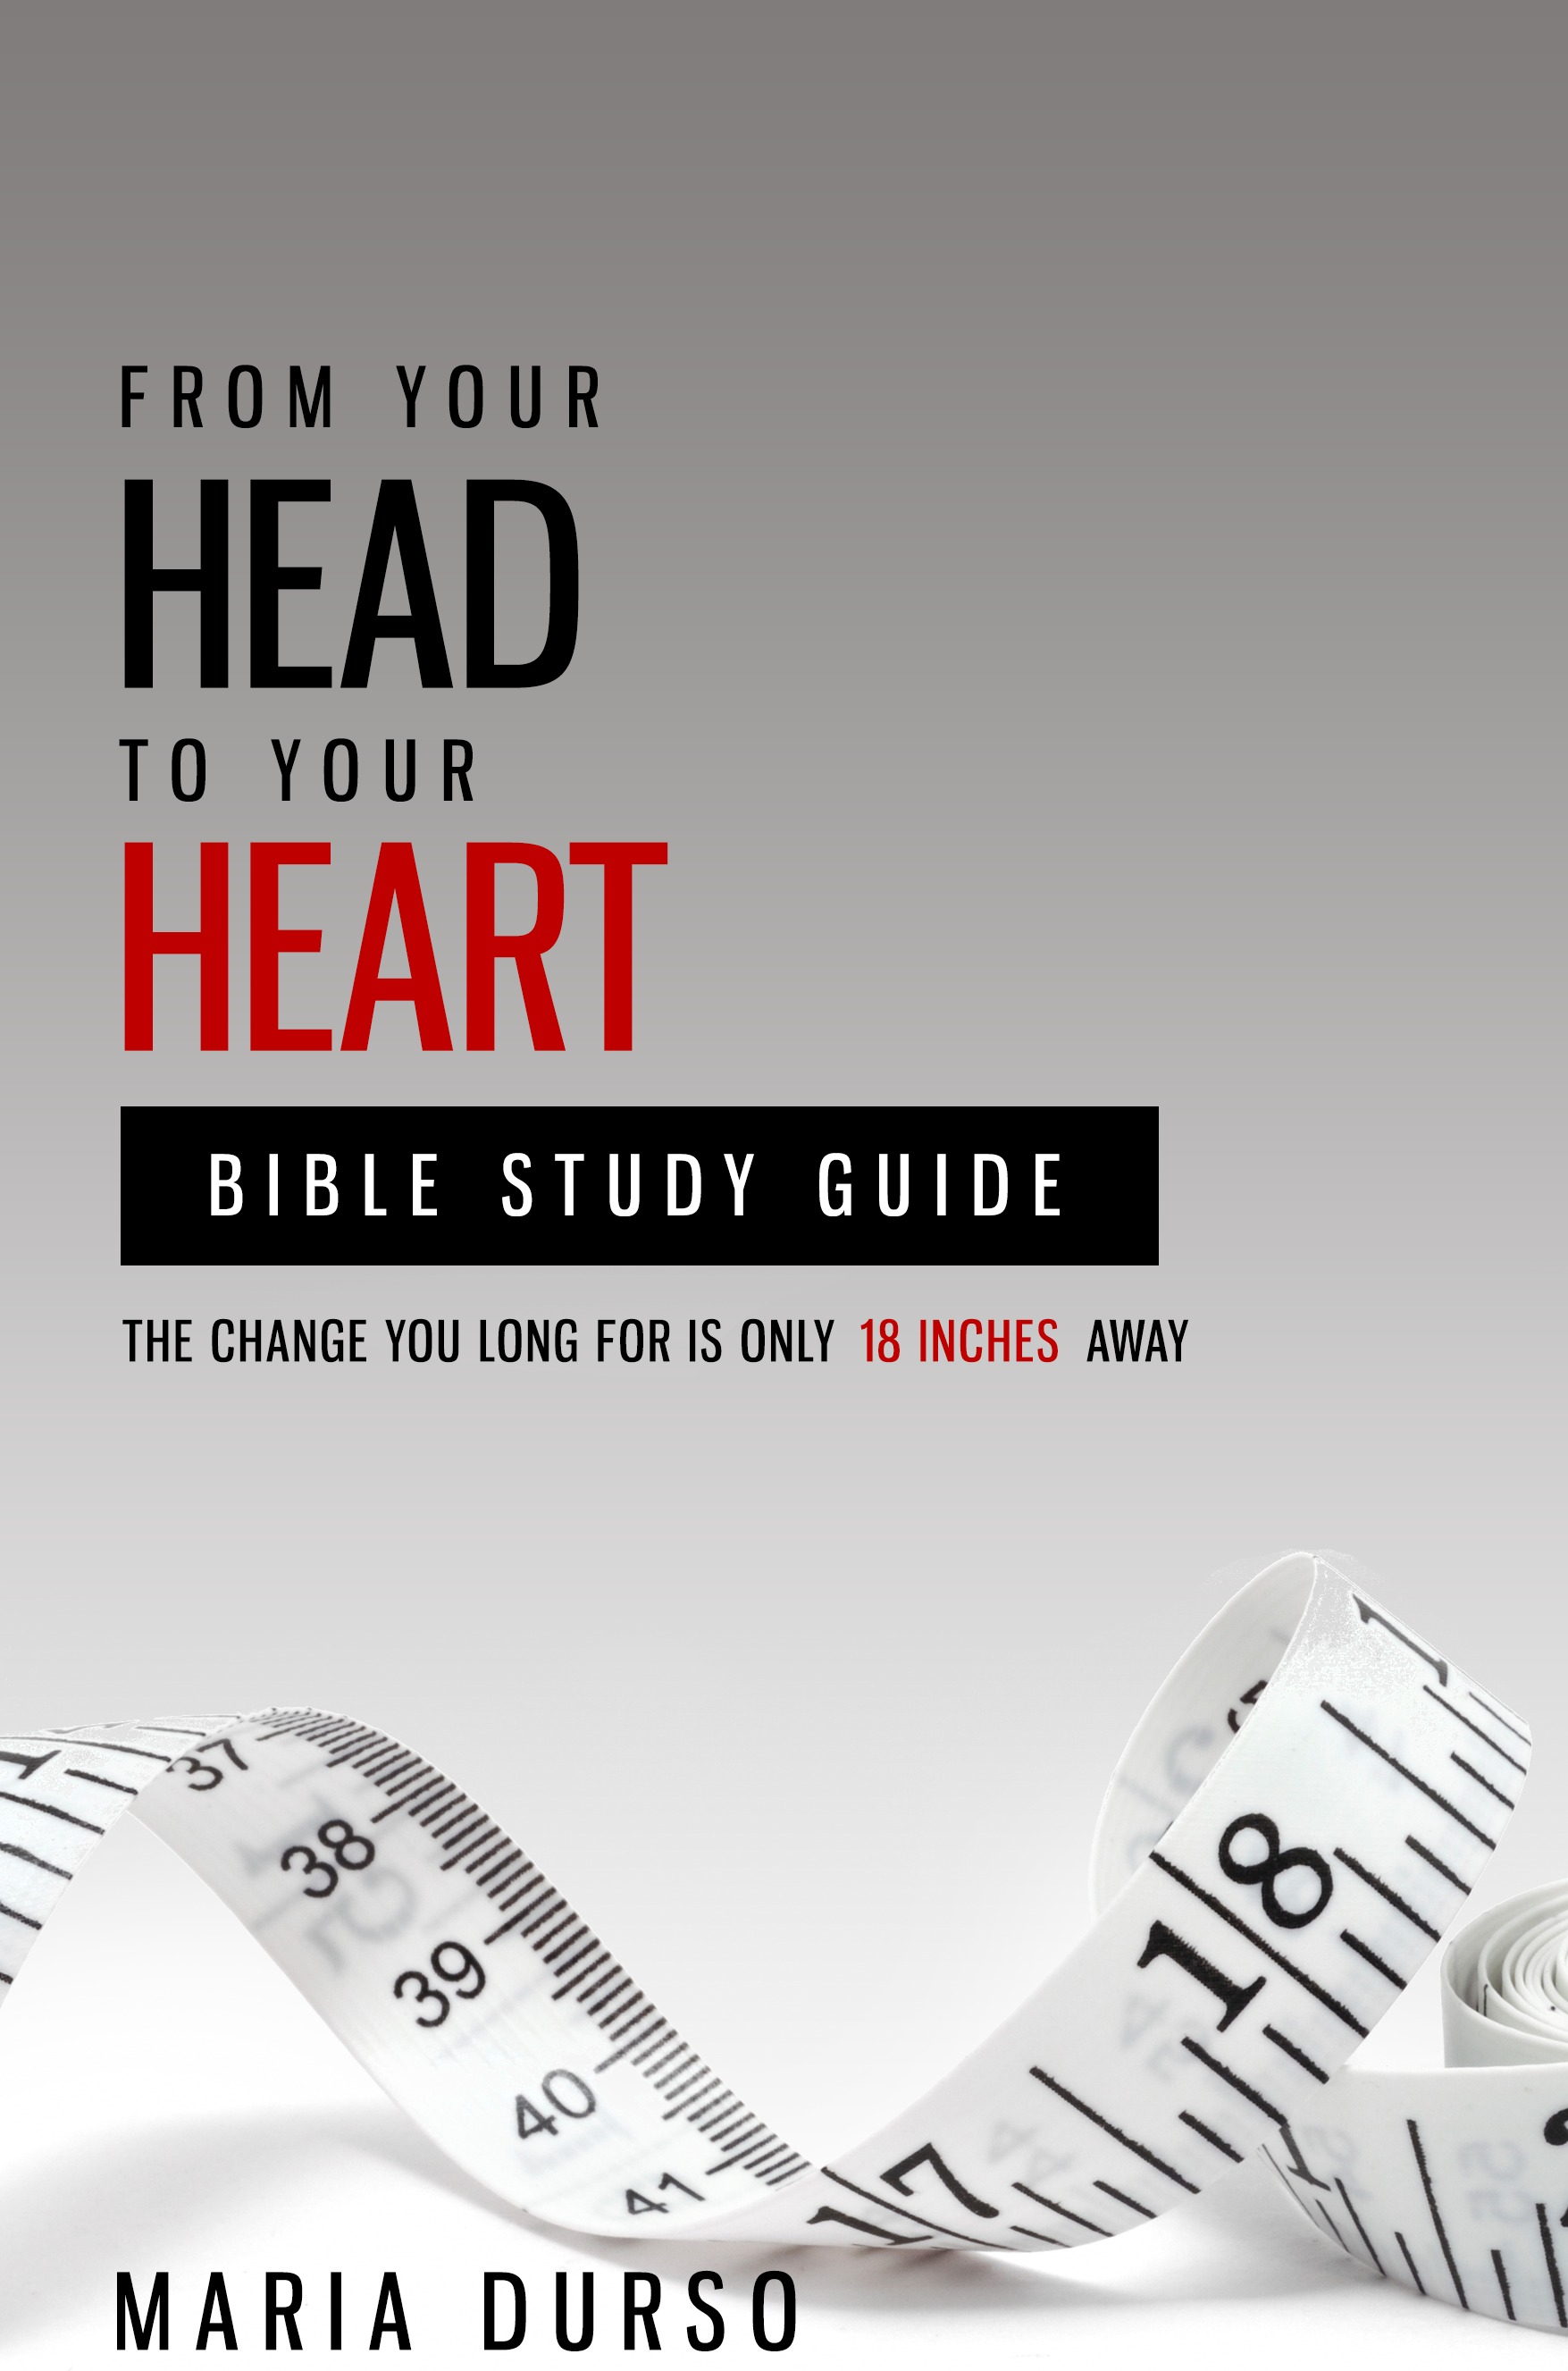 From Your Head to Your Heart Bible Study Guide